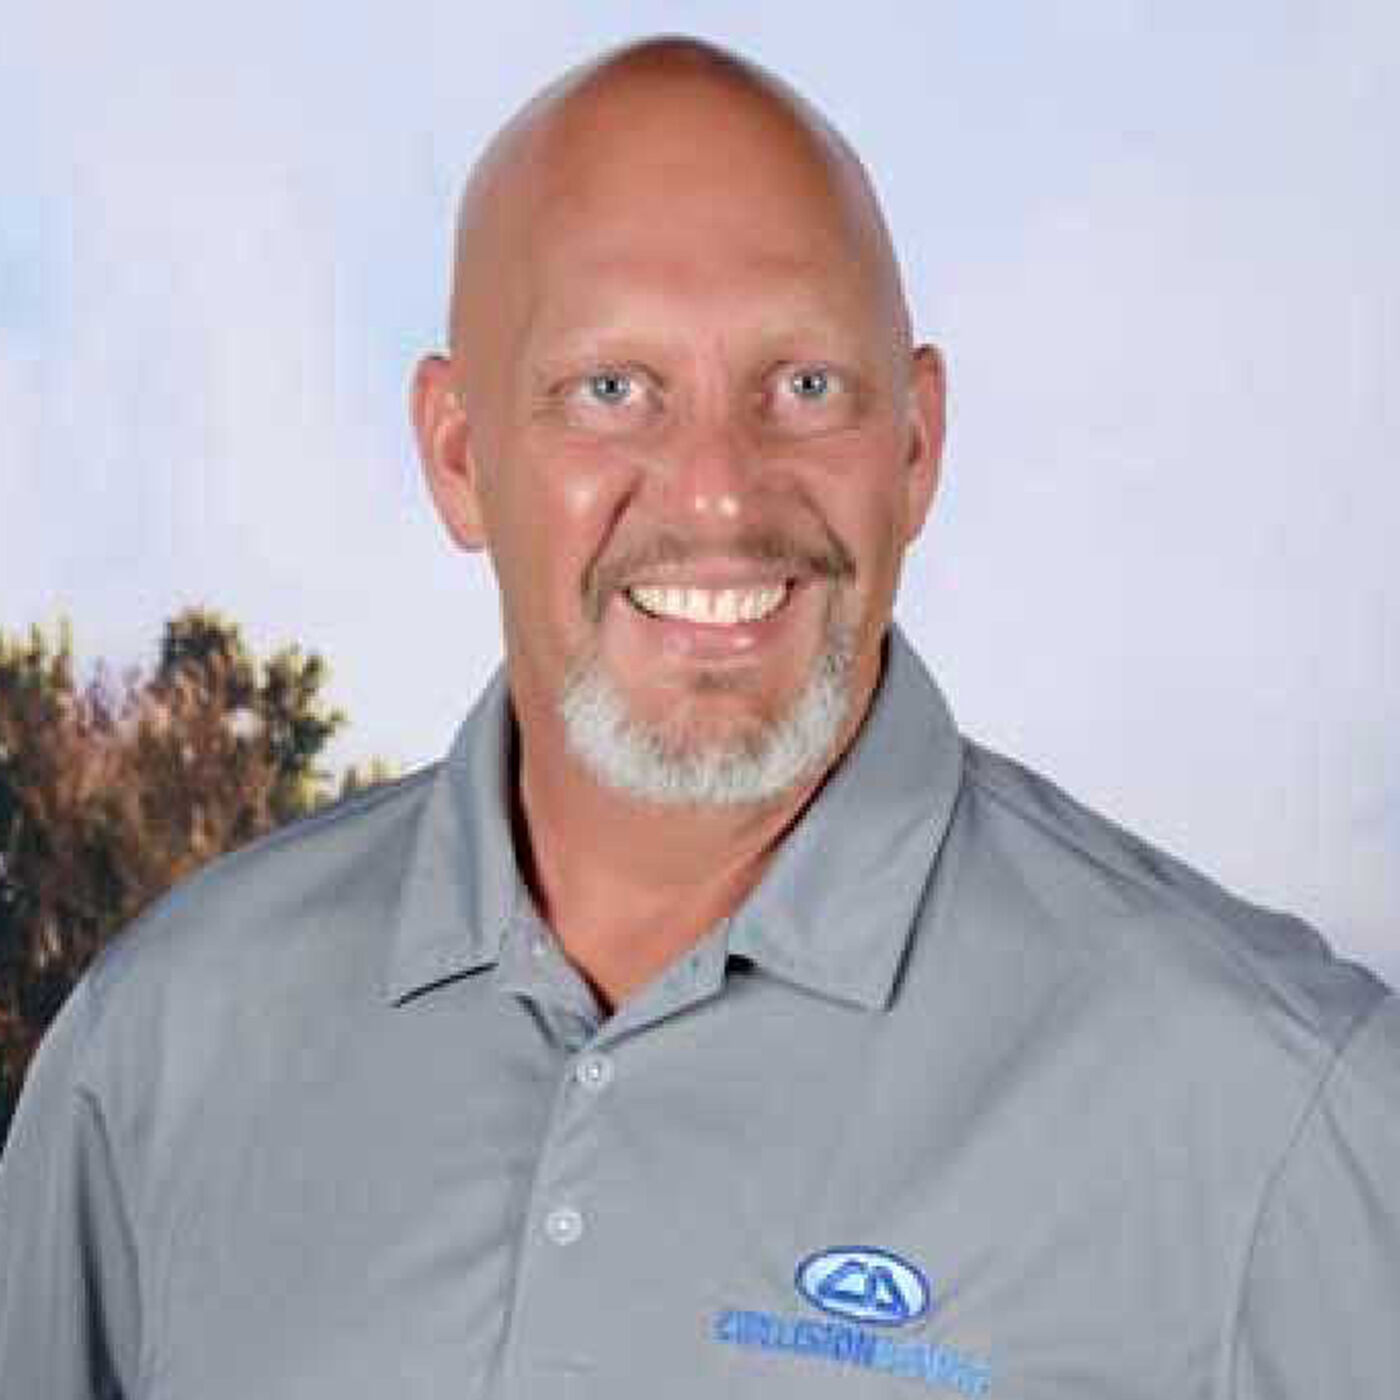 Episode 77: Mike Anderson talks about the 2021 Collision Repair Market and how the pandemic is giving collision repair shops a glimpse into the future.